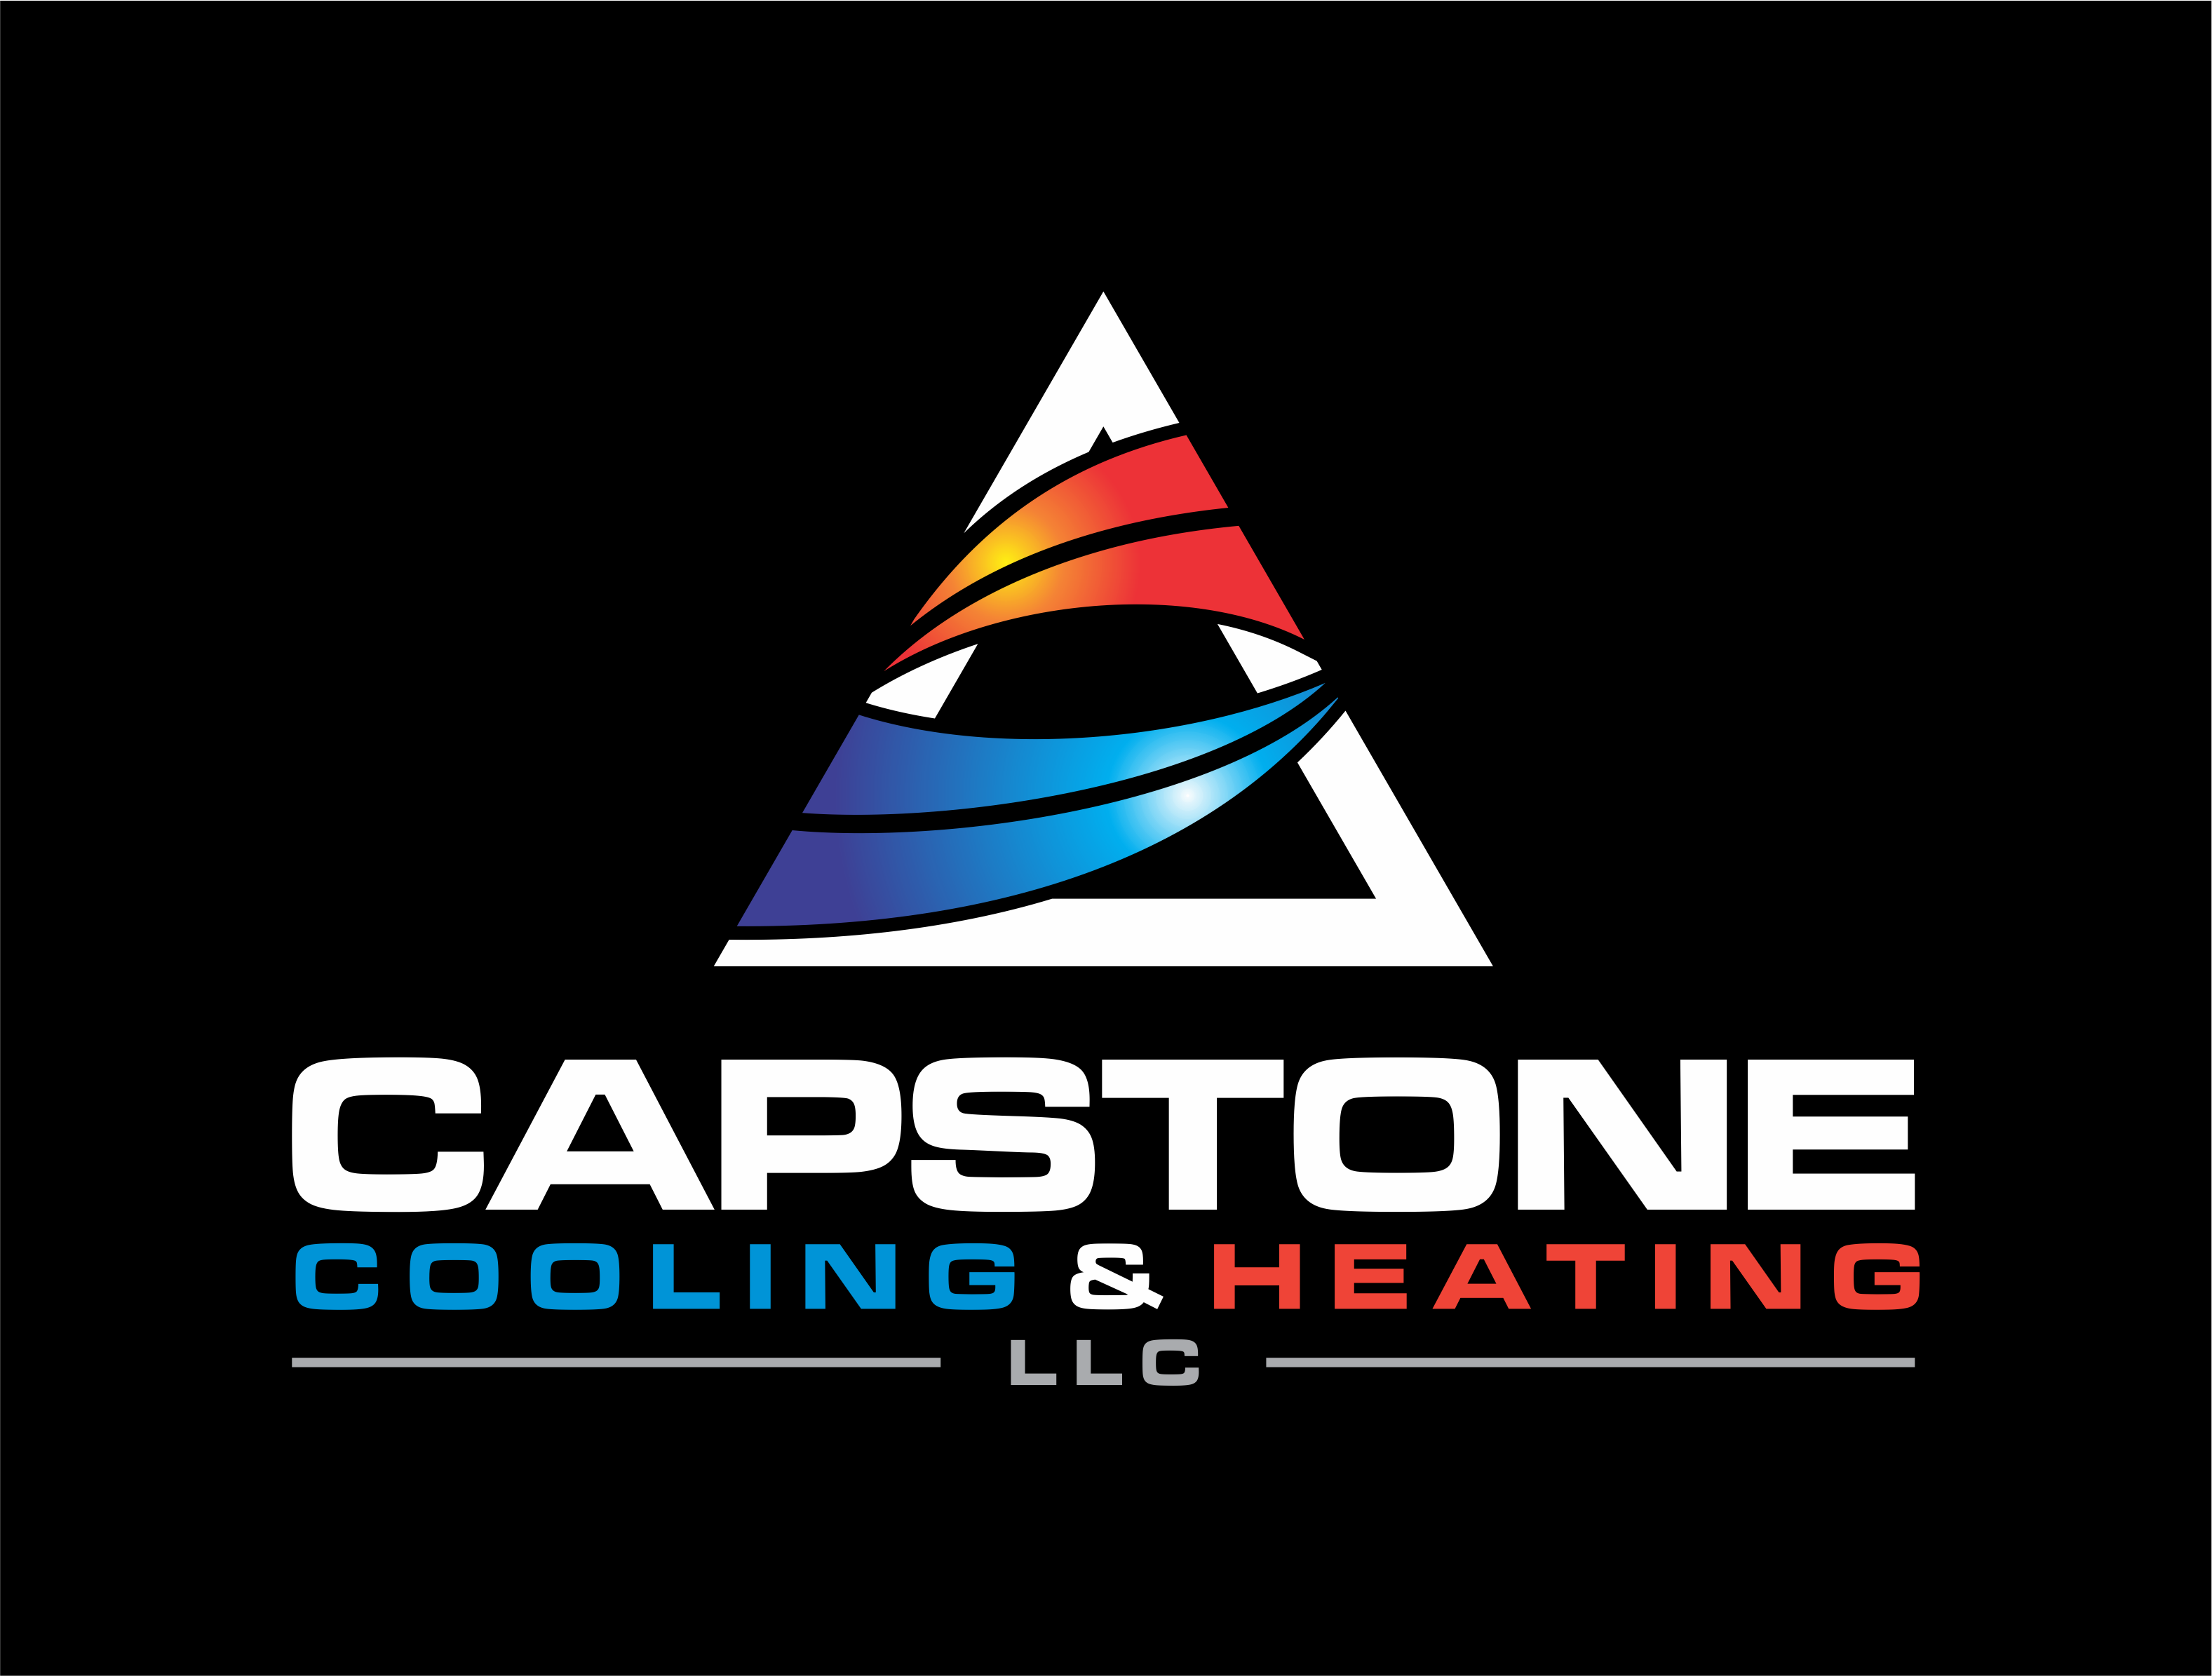 Capstone Cooling & Heating LLC